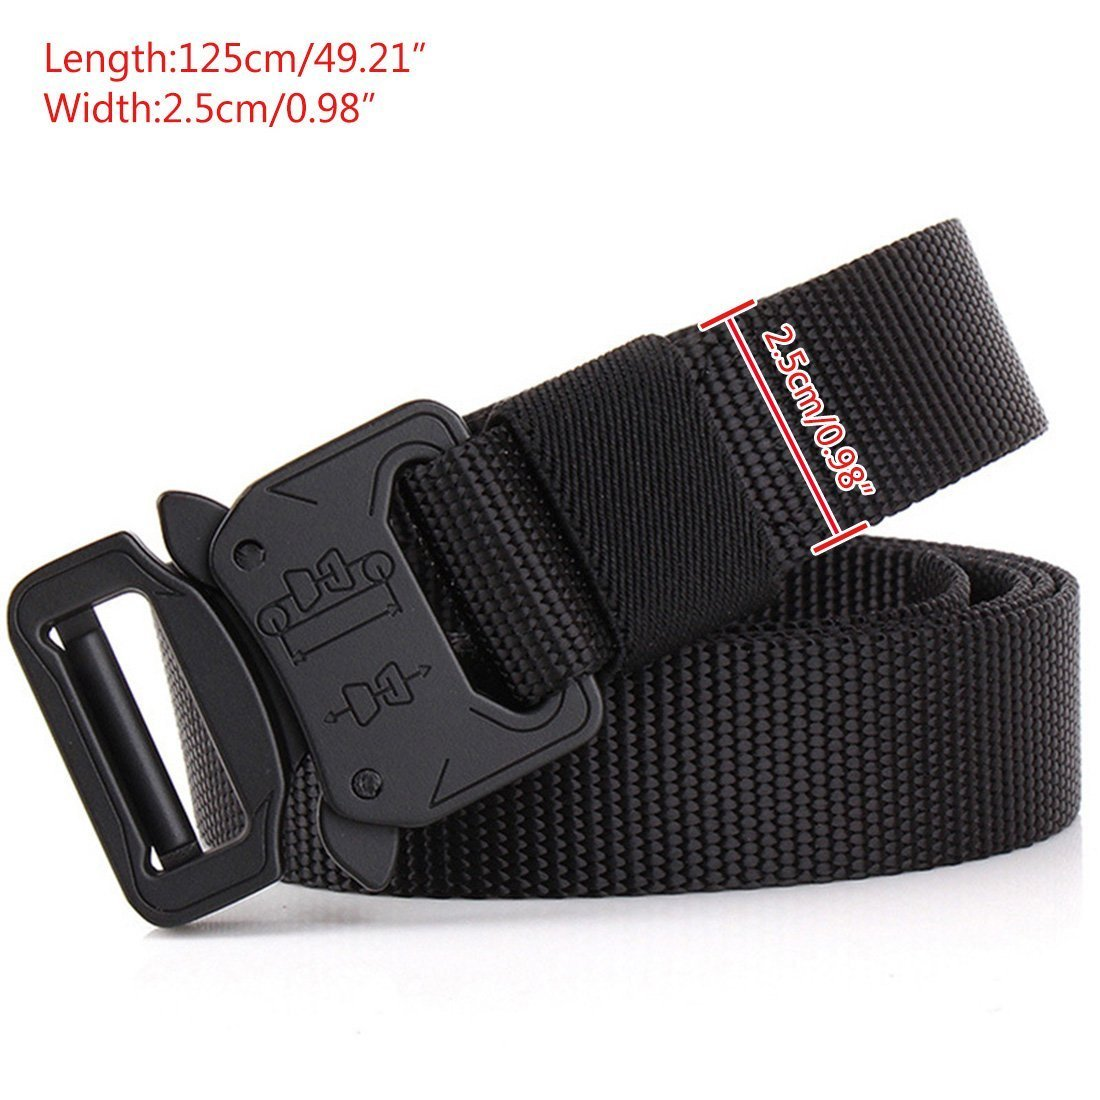 EIF Fei Men Tactical Belt Riggers Web Nylon Belt Adjustable Military Style